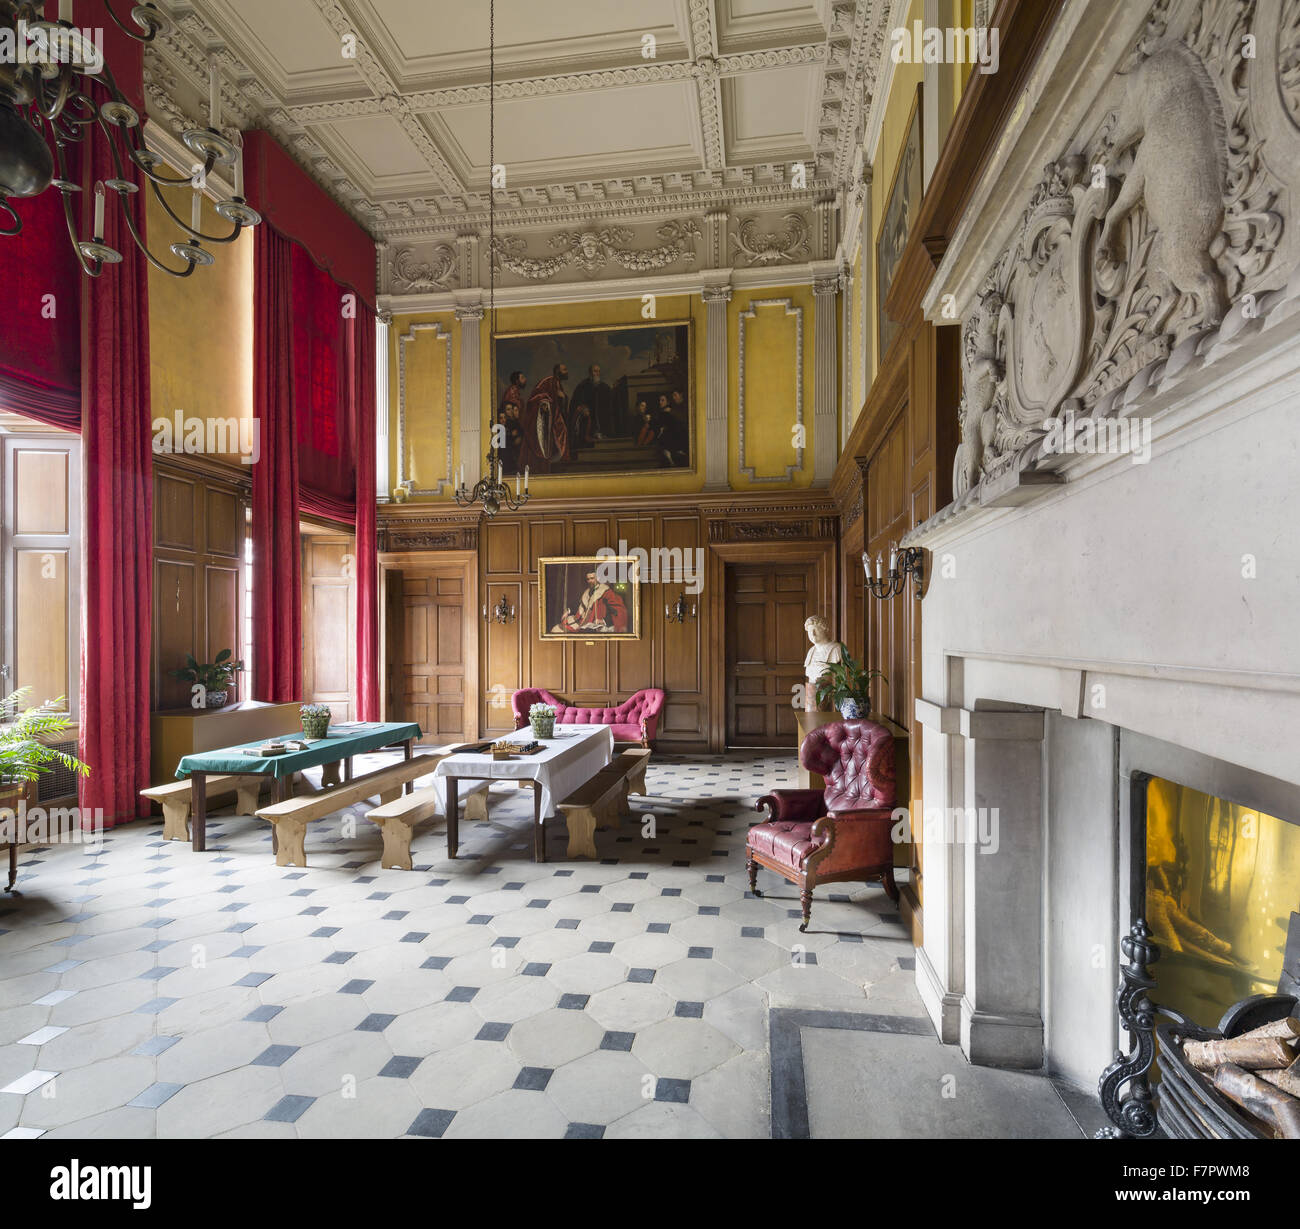 Recreation of the Stamford Military Hospital refectory, in The Great Hall at Dunham Massey, Cheshire. During the Stock Photo